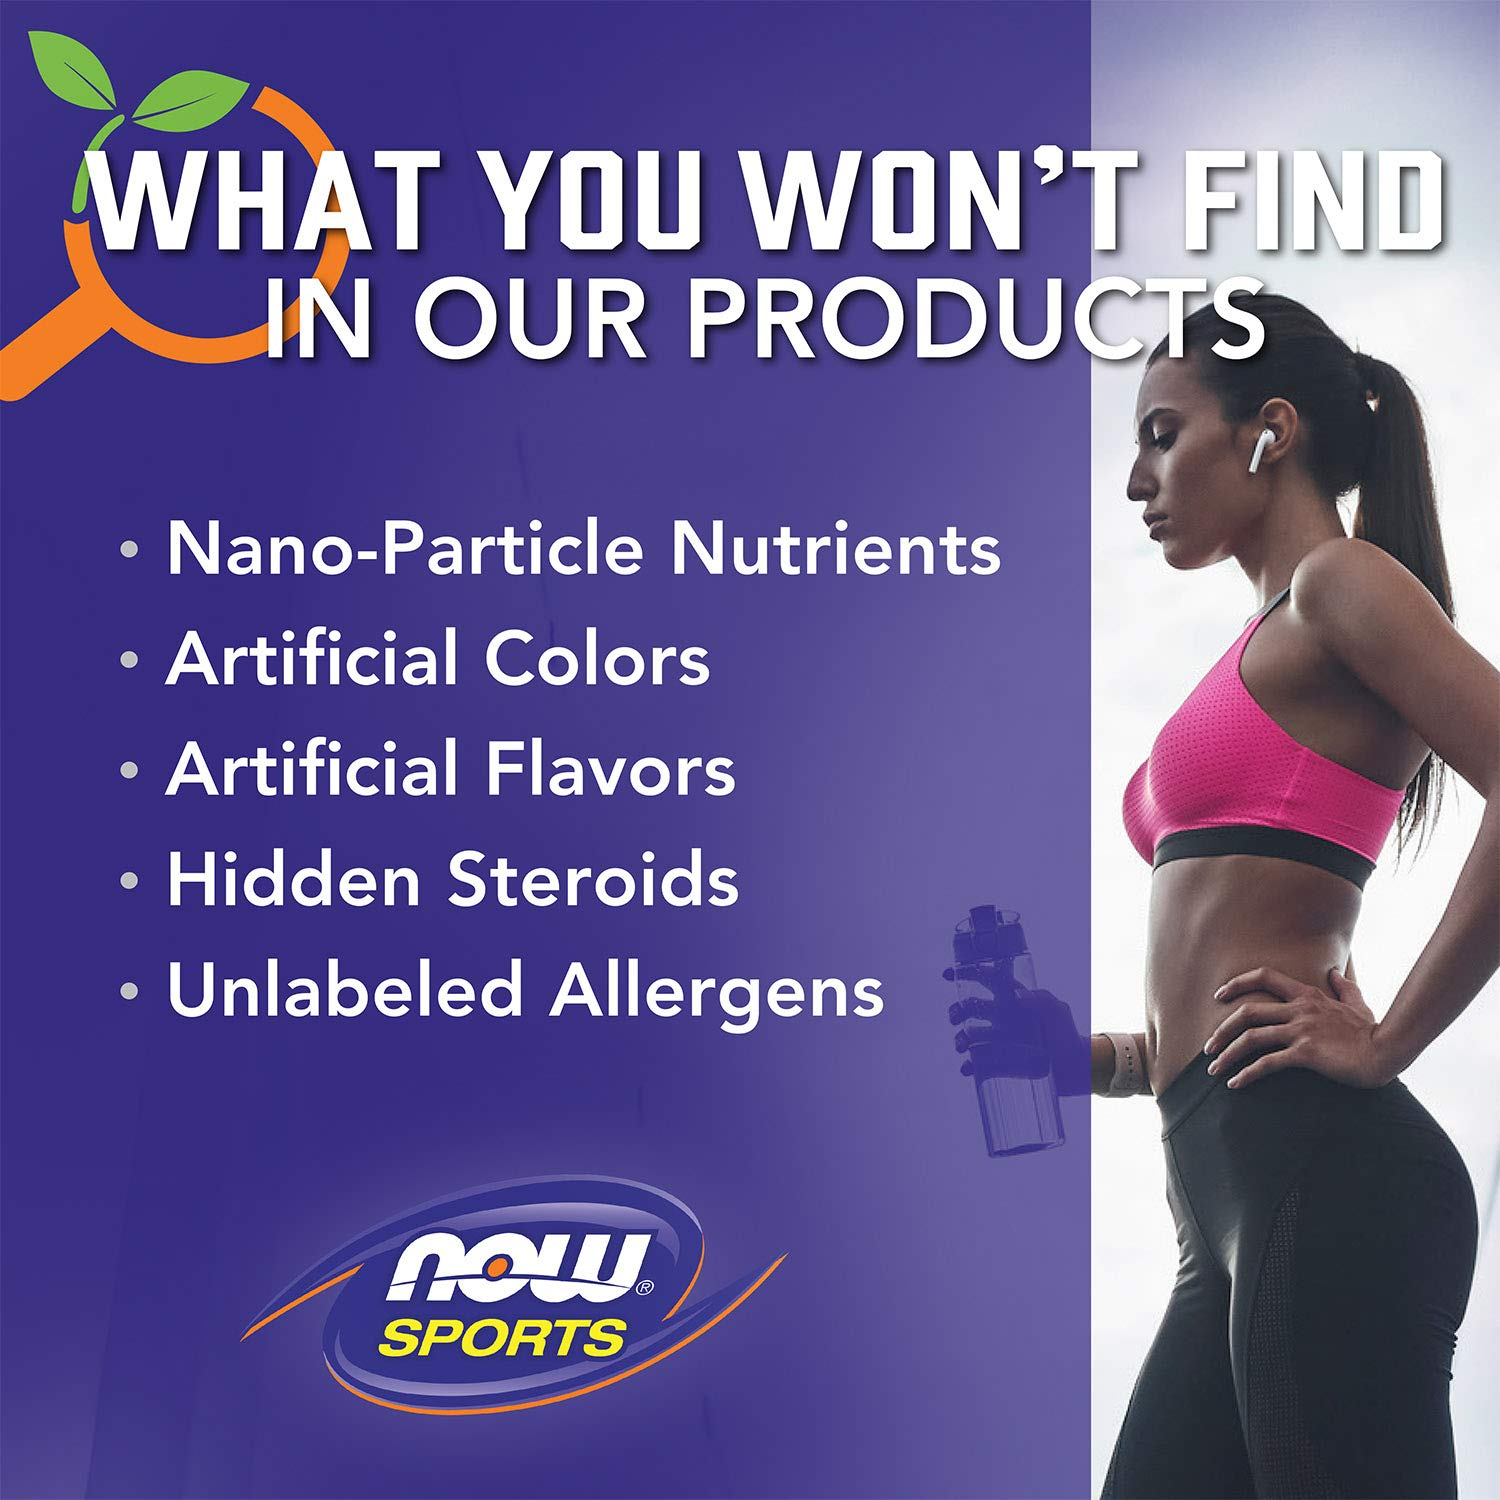 NOW Sports Nutrition, Soy Protein Isolate Powder, Unflavored, 2-Pound by Now Sports (Image #9)